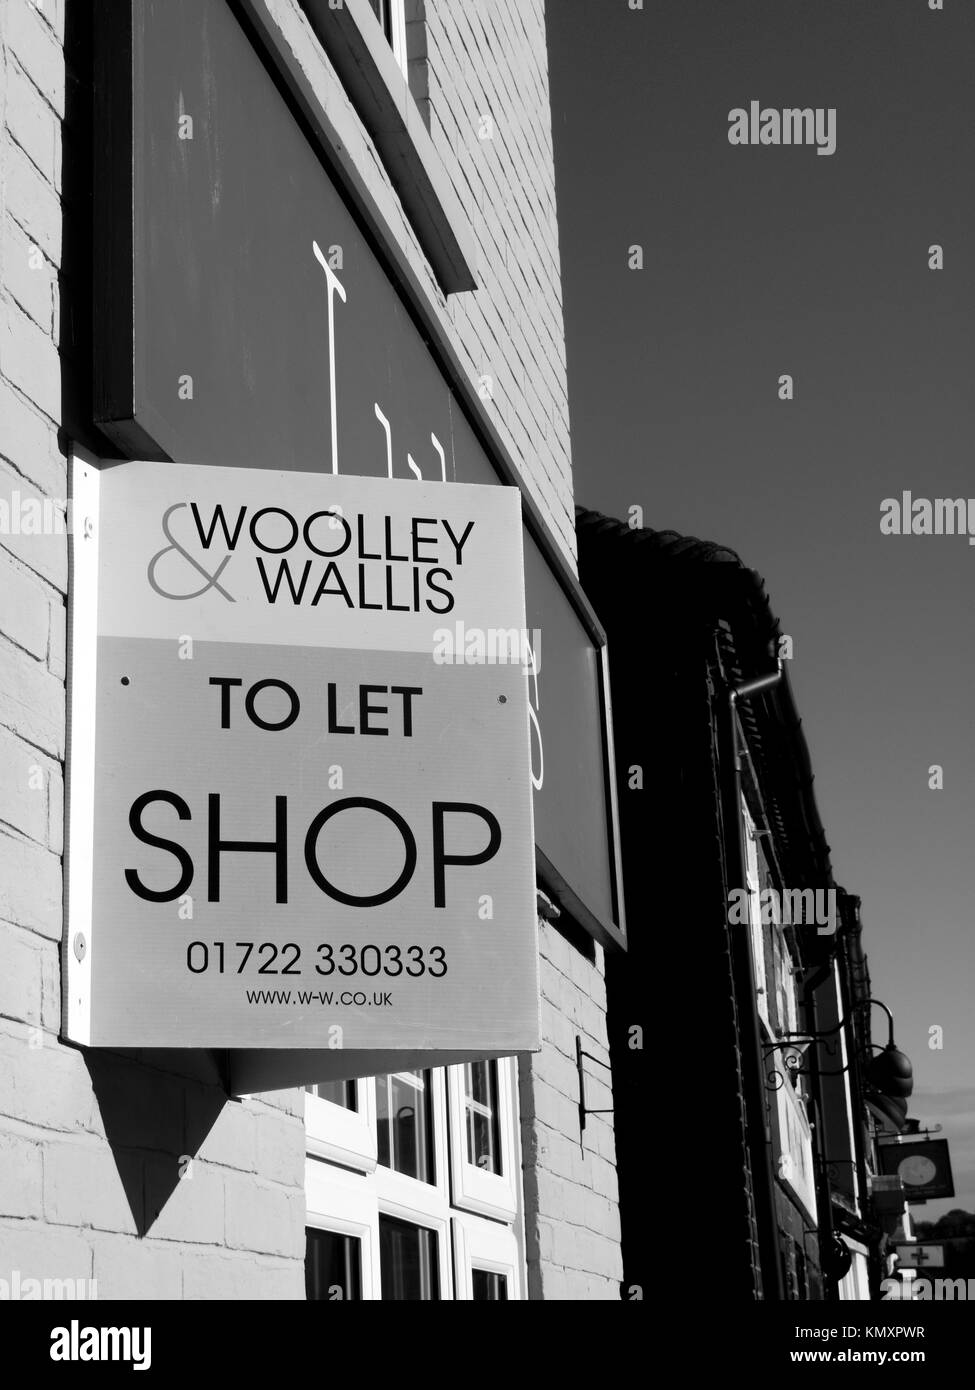 Shop to let sign over vacant retail premises - Stock Image